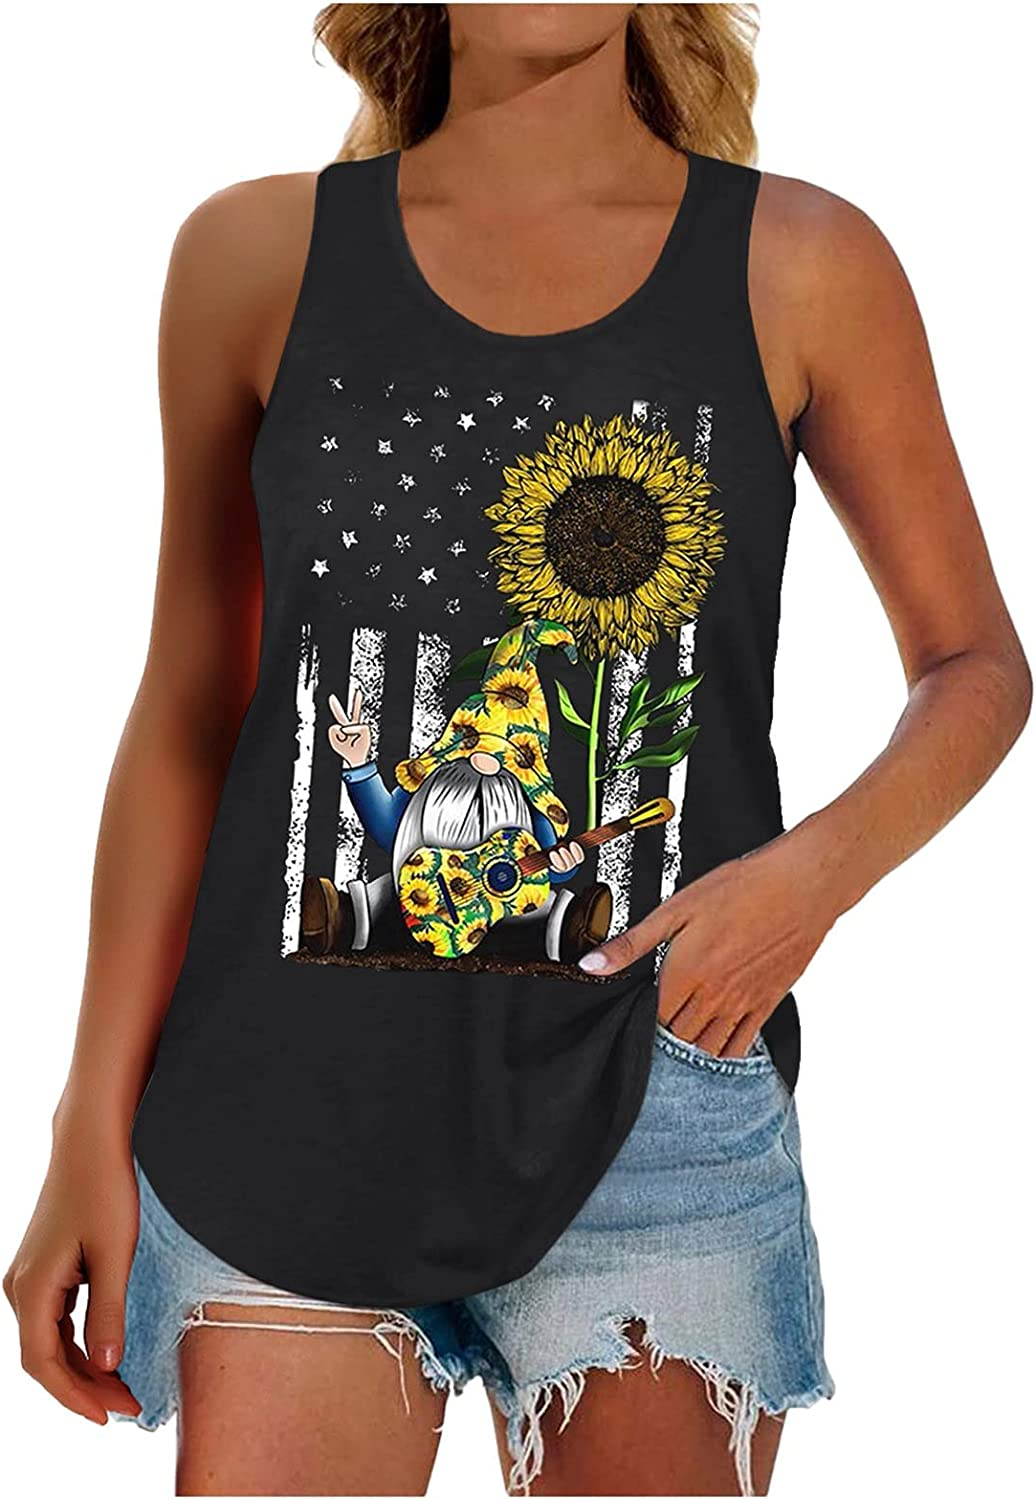 Euone_Clothes Blouses for Women Fashion, Women's Casual Sunflower Independence Day Print Sleeveless Vest Top